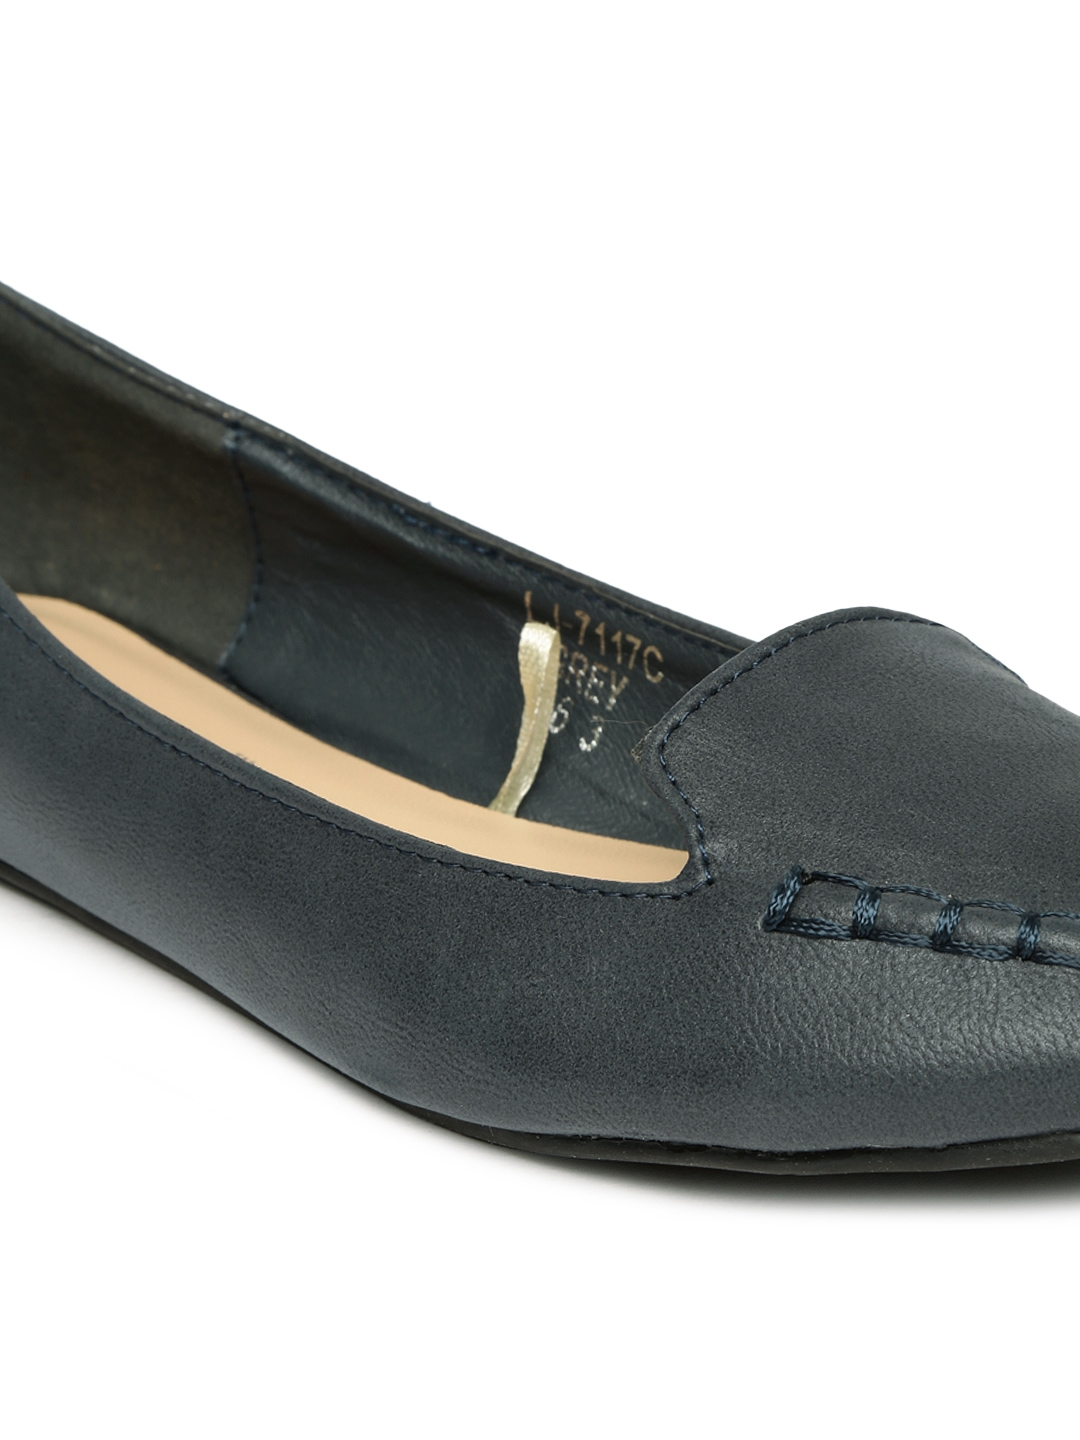 Welcome to SoftWalk, classy comfortable women's shoe styles in range of sizes and widths. FREE Shipping and FREE Returns.